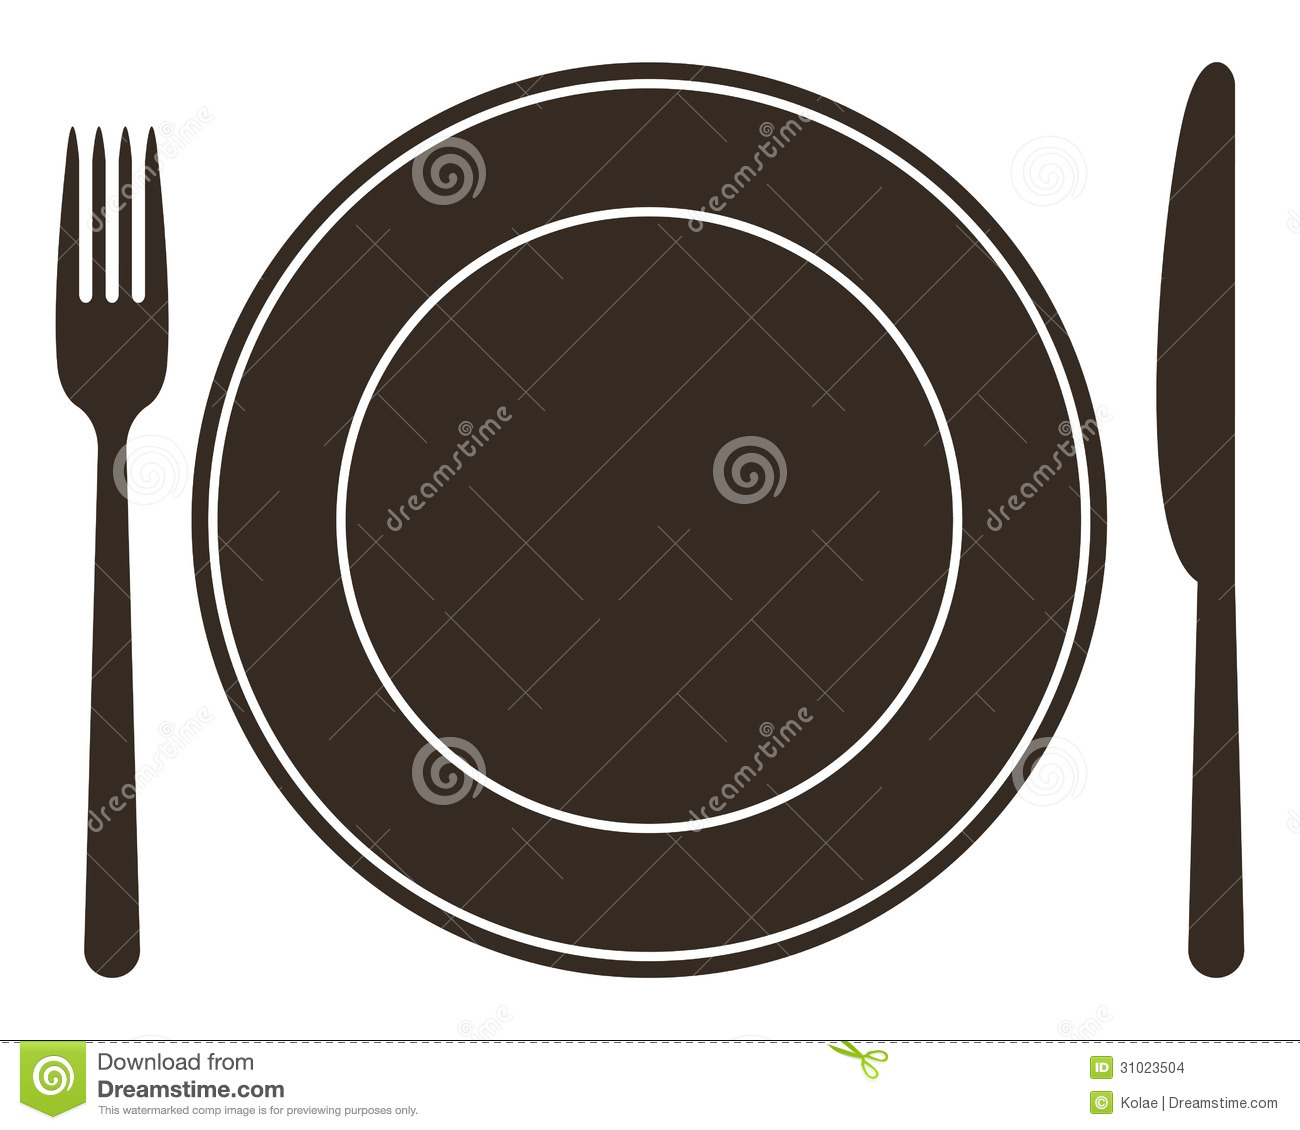 Place setting with plate, knife and fork isolated on white background.